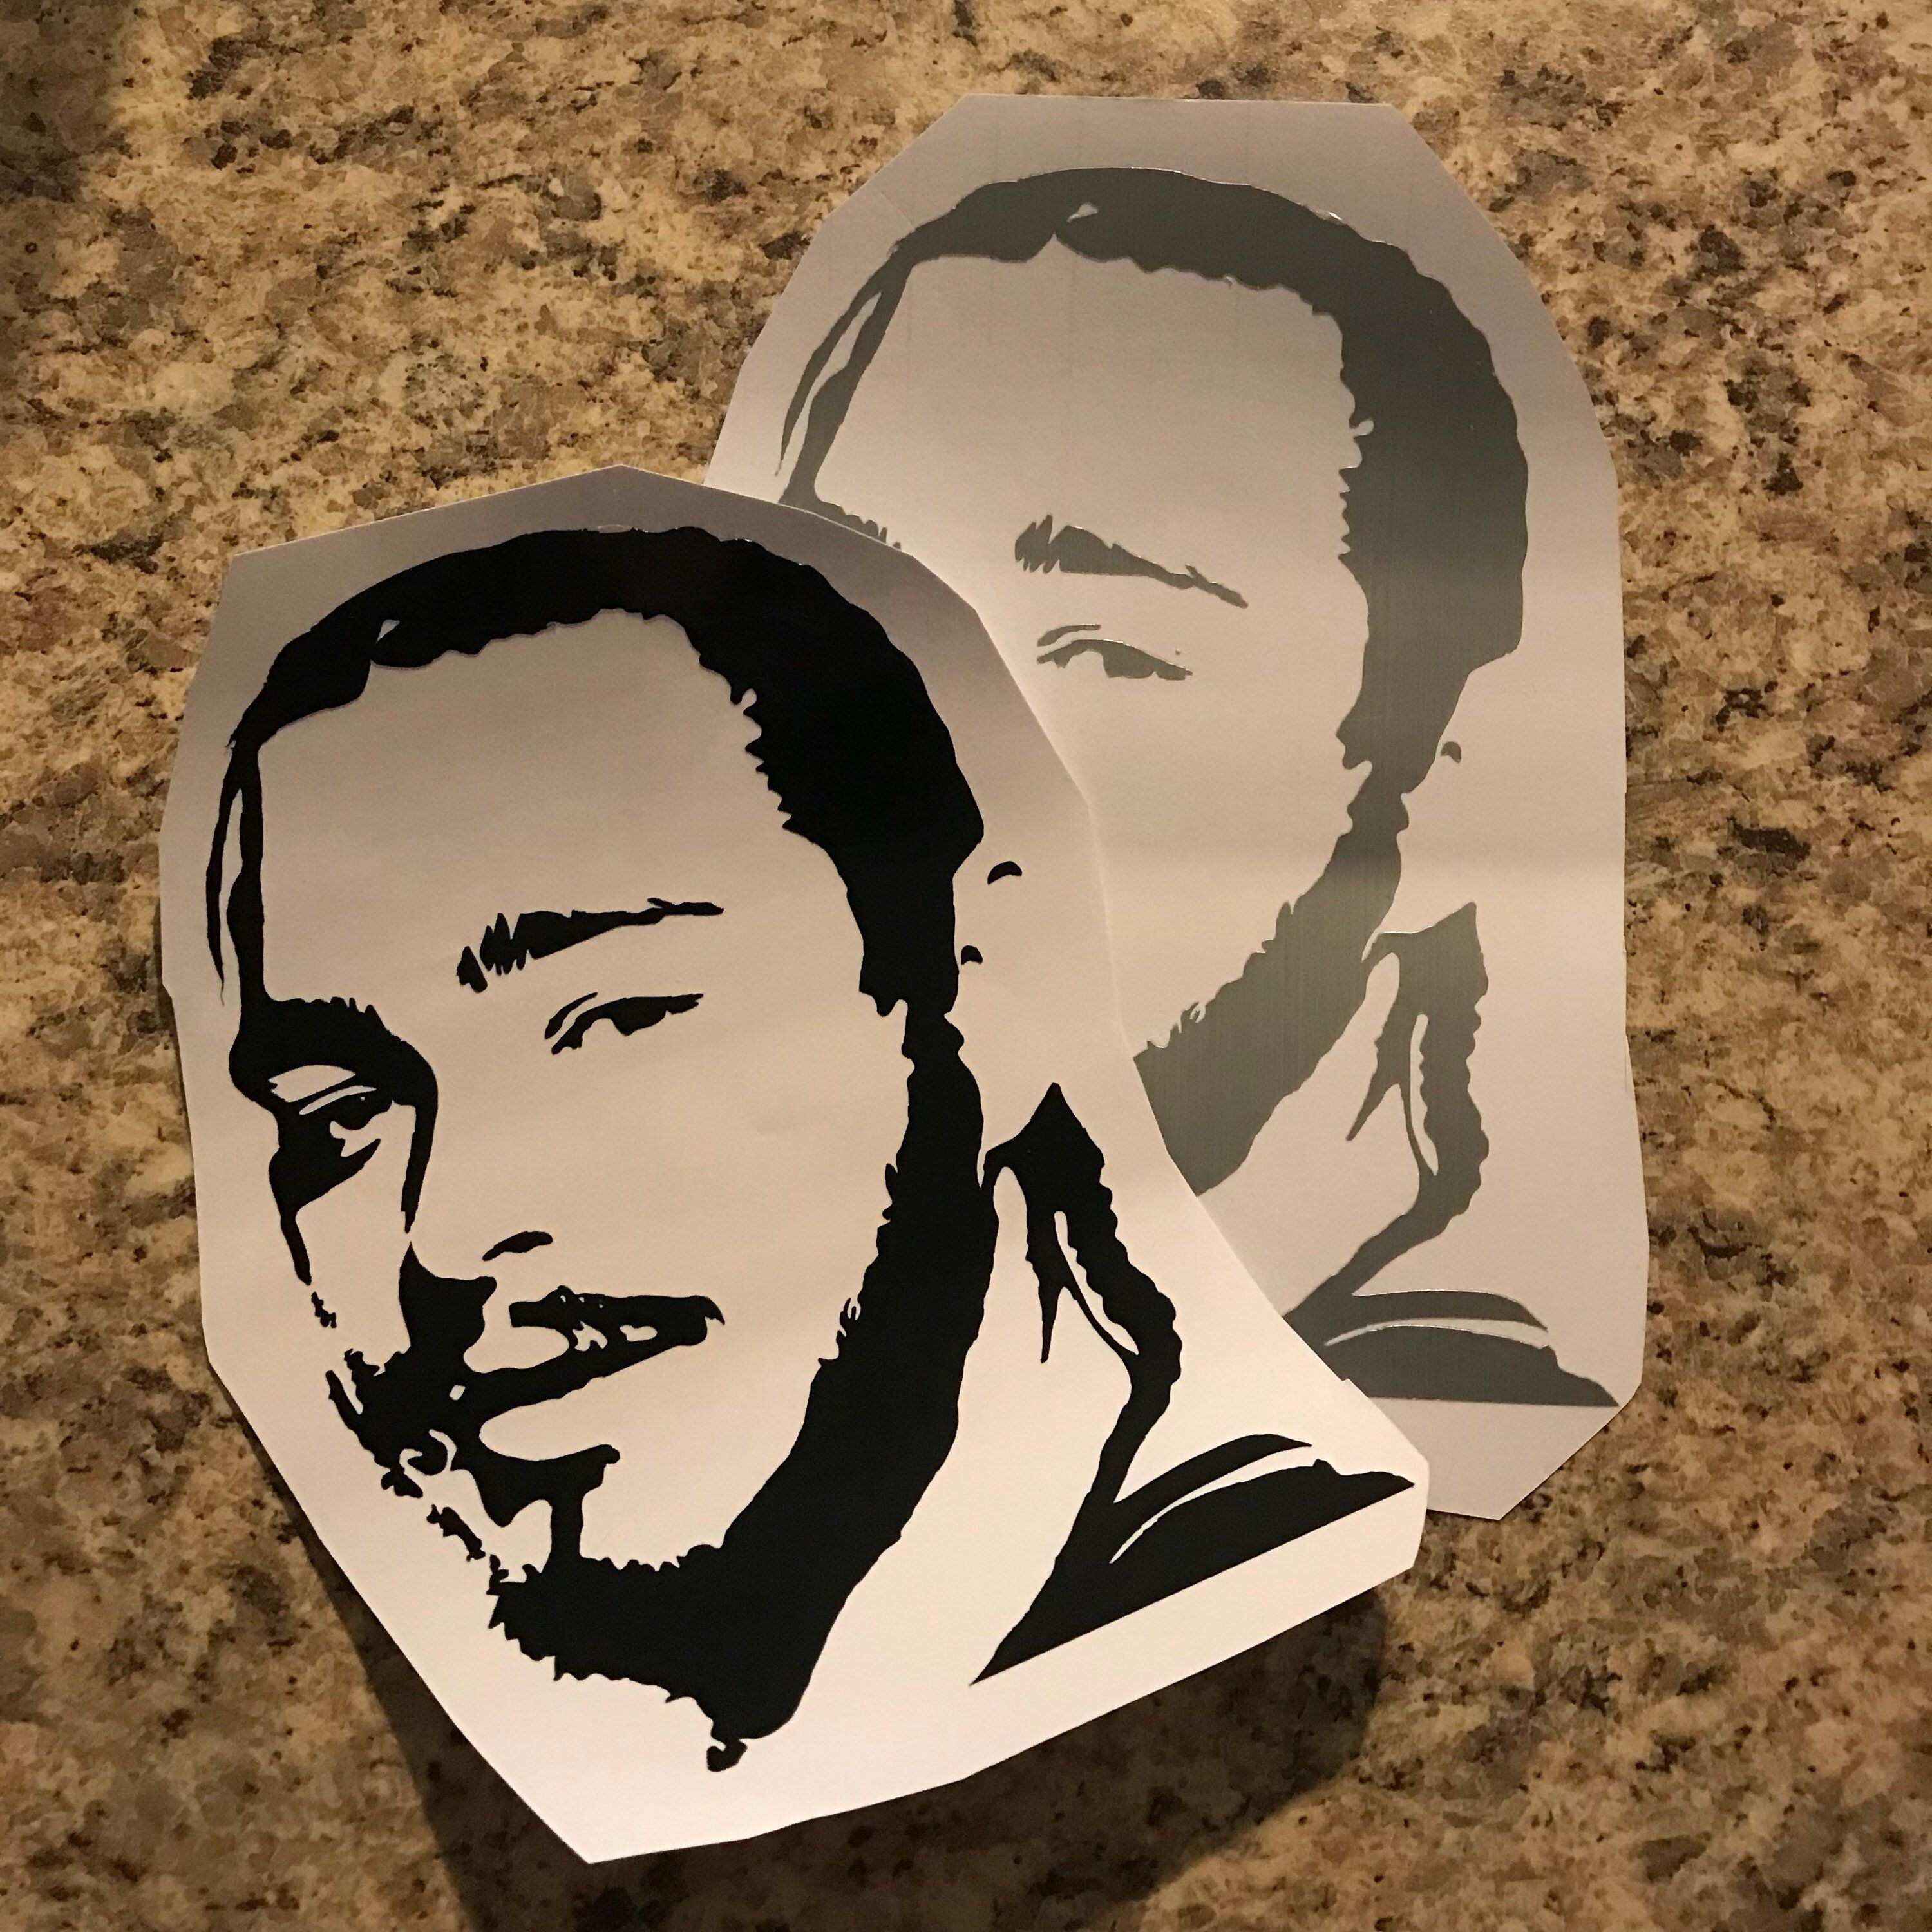 Post Malone Clip Art: Post Malone Silhouette Vinyl Decal By MommyandEcreations